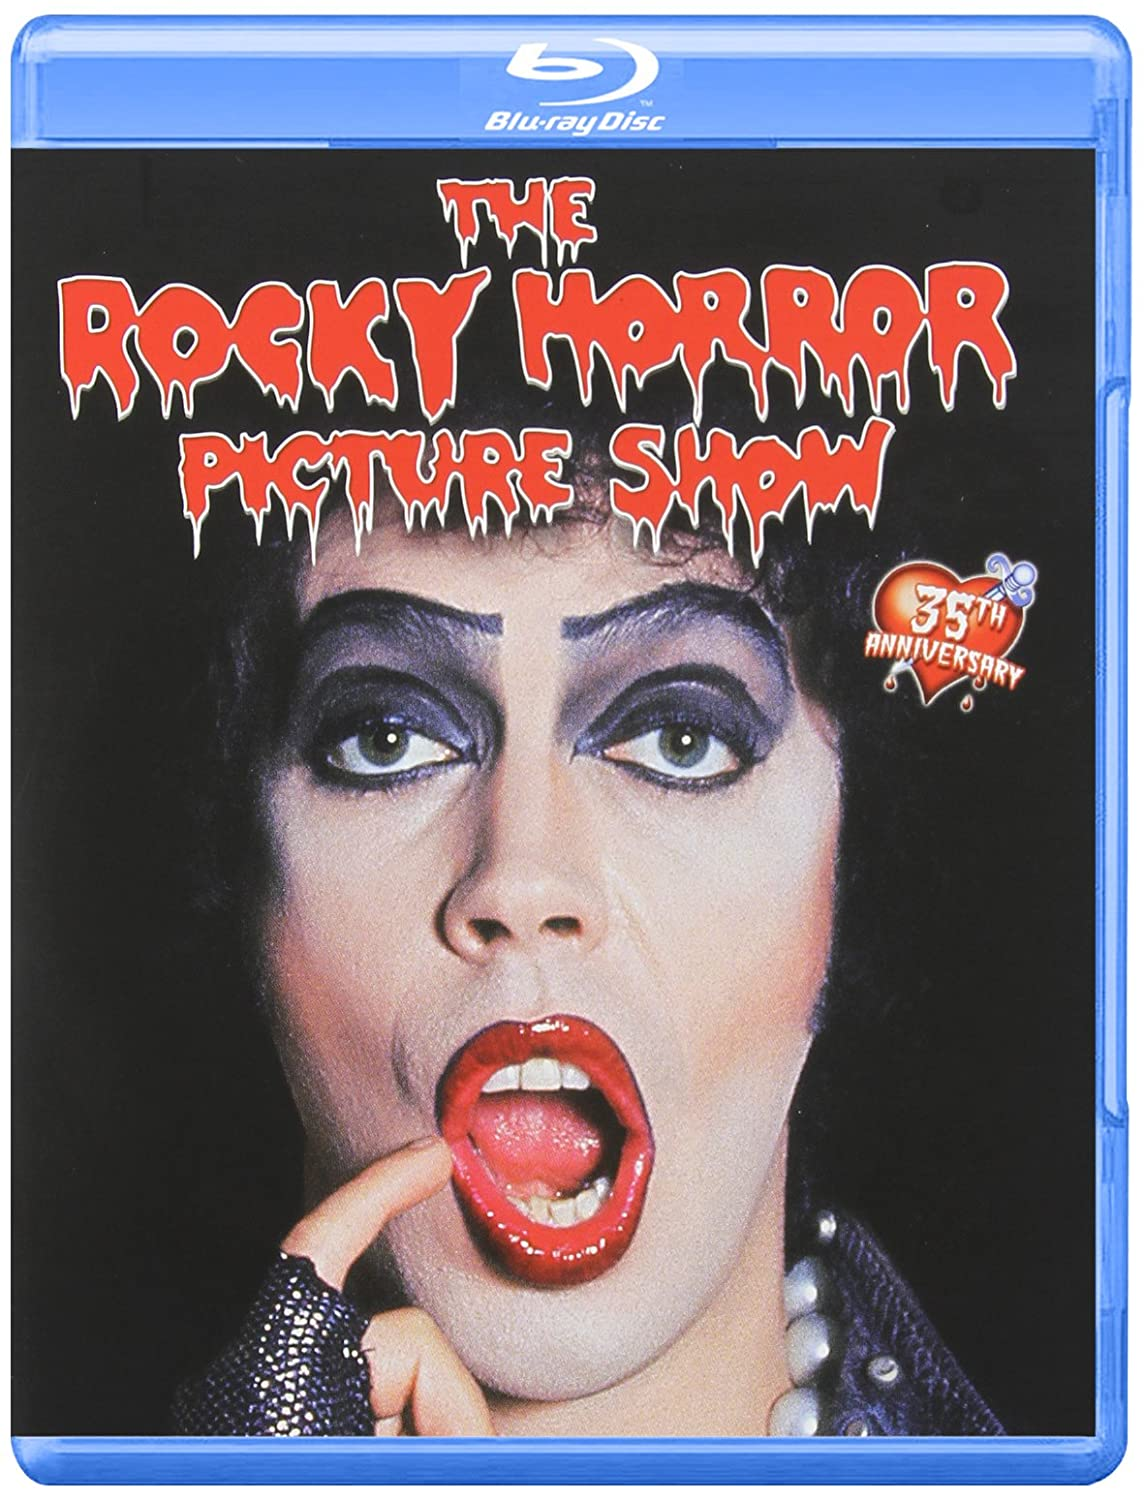 Rocky Horror Picture Show [Blu-ray] (Sous-titres français) Comedies Movie